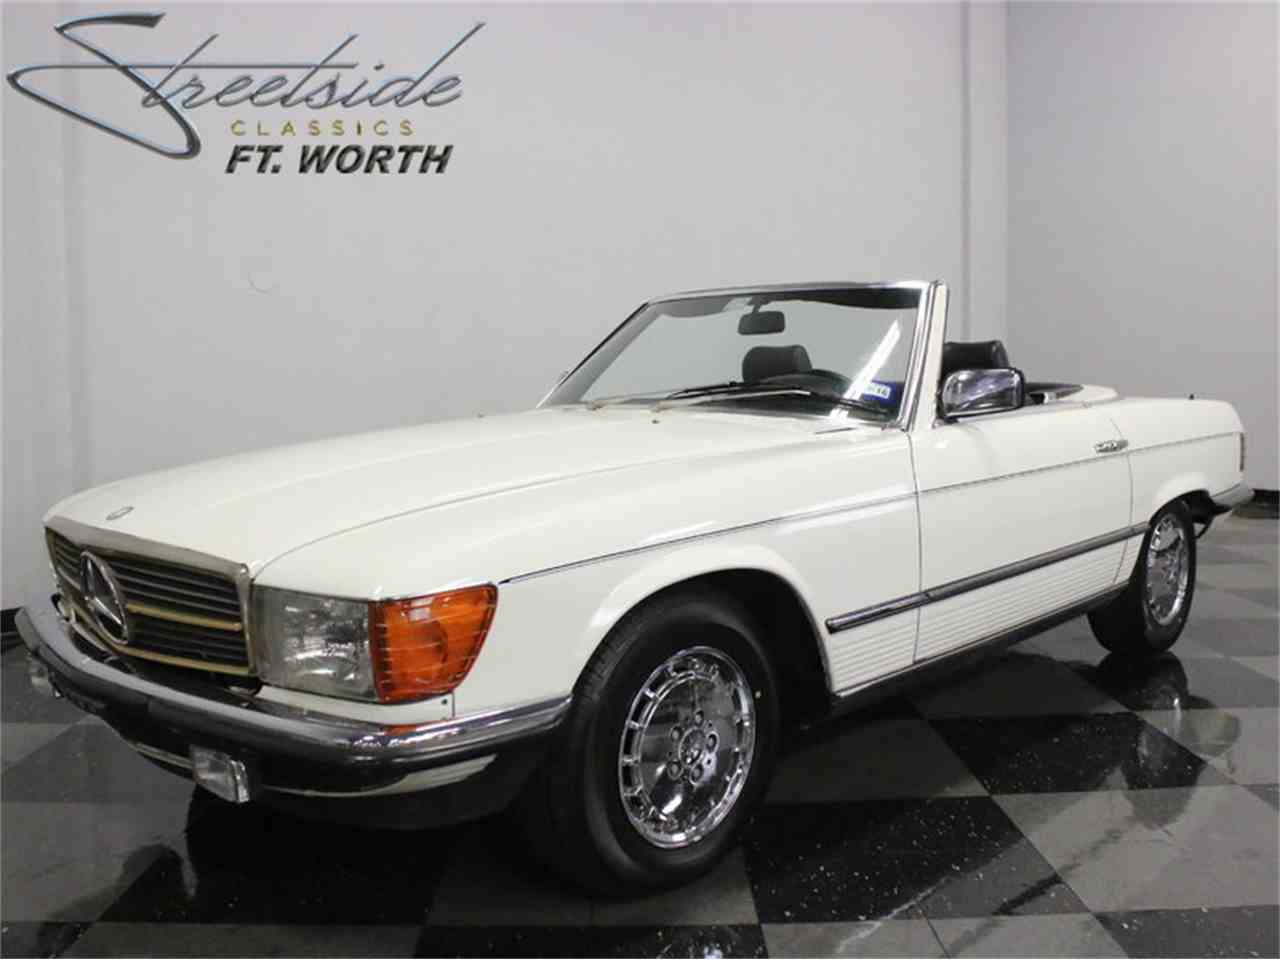 1985 mercedes benz 280sl for sale cc for Mercedes benz ft worth